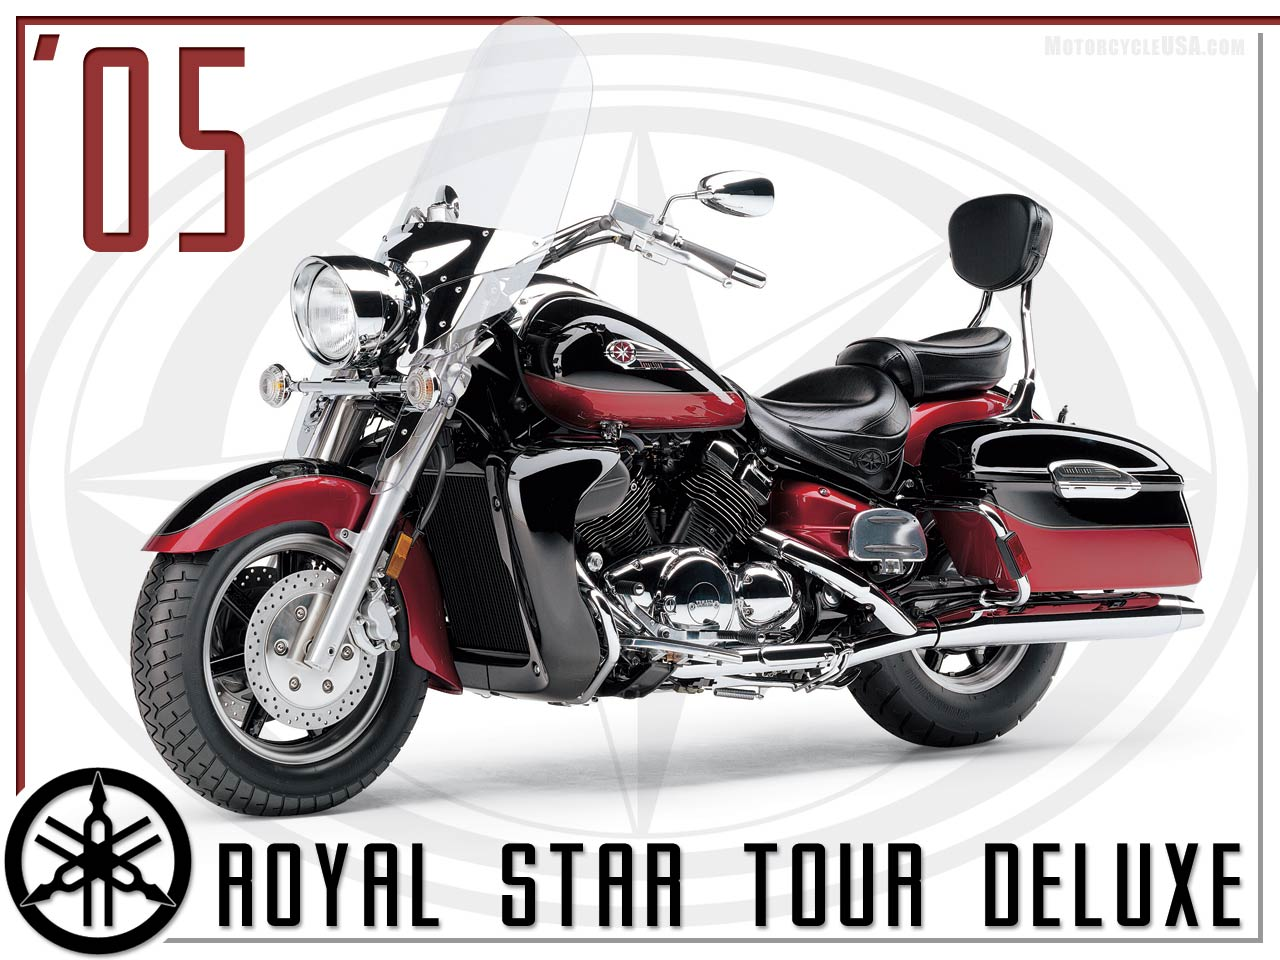 Yamaha Royal Star Tour Deluxe 2013 #9